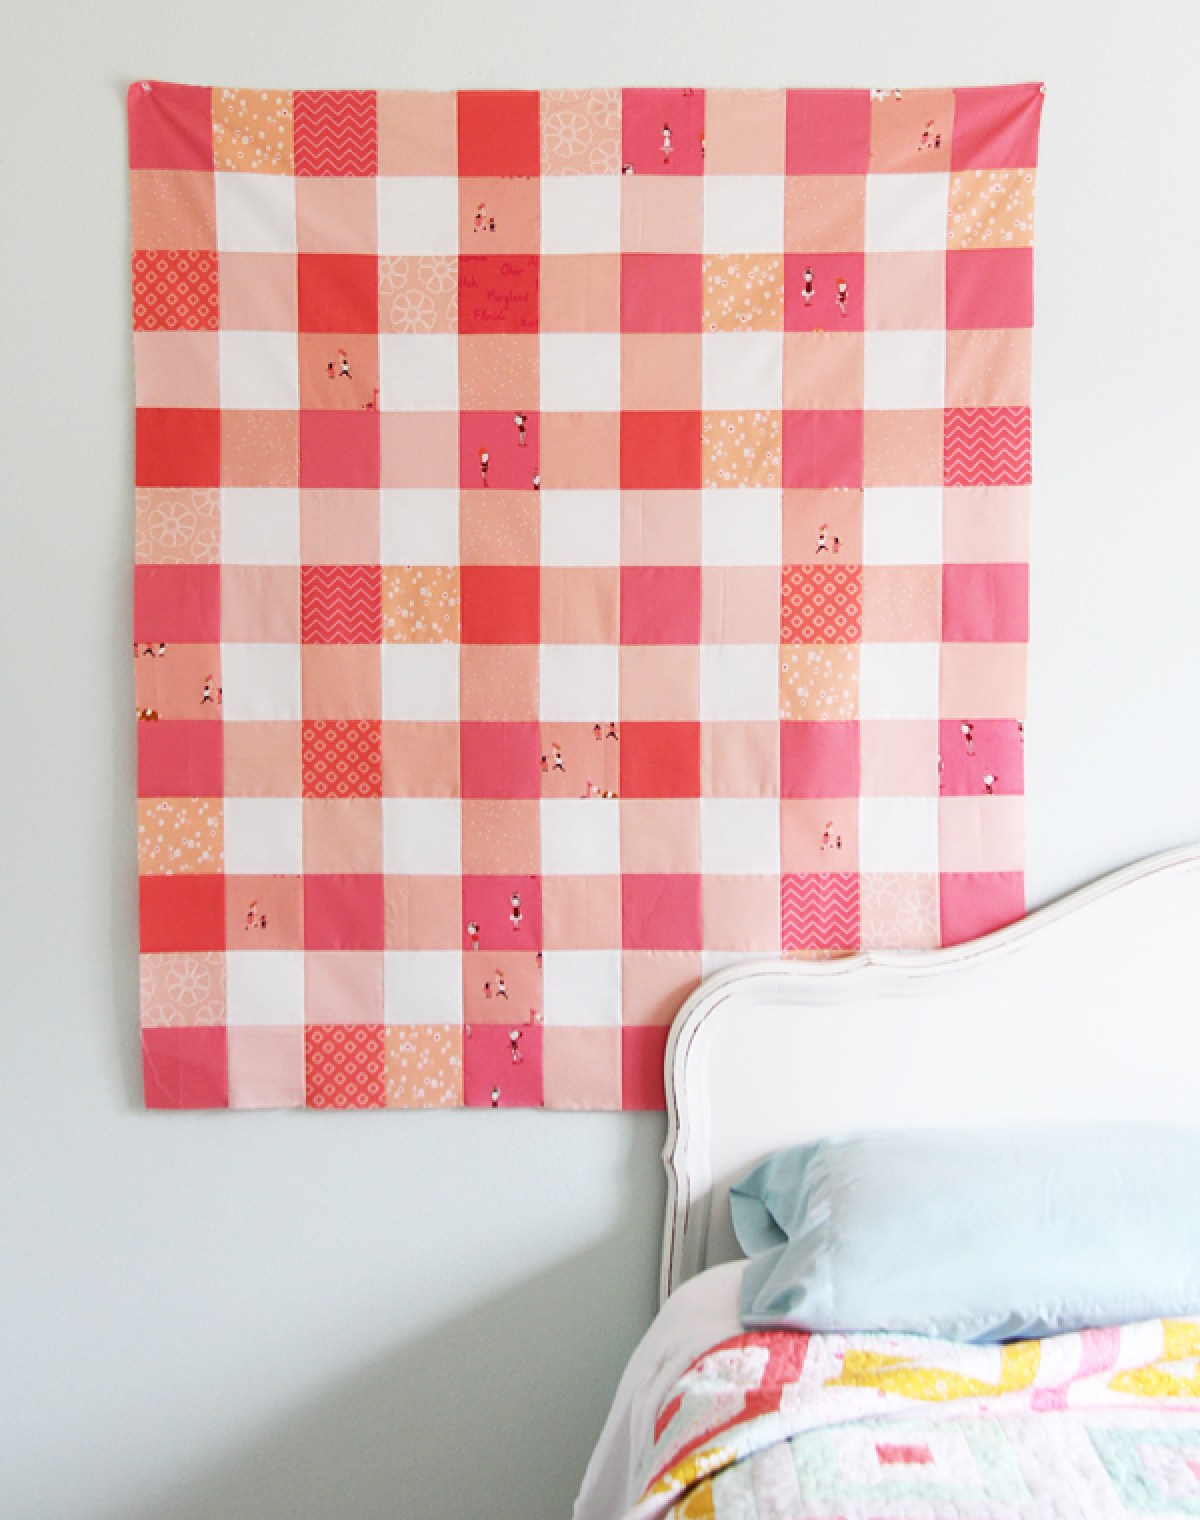 10 Free Modern Quilt Patterns For Beginners! - Gingham Coral Quilt Top - from Cluck Cluck Sew